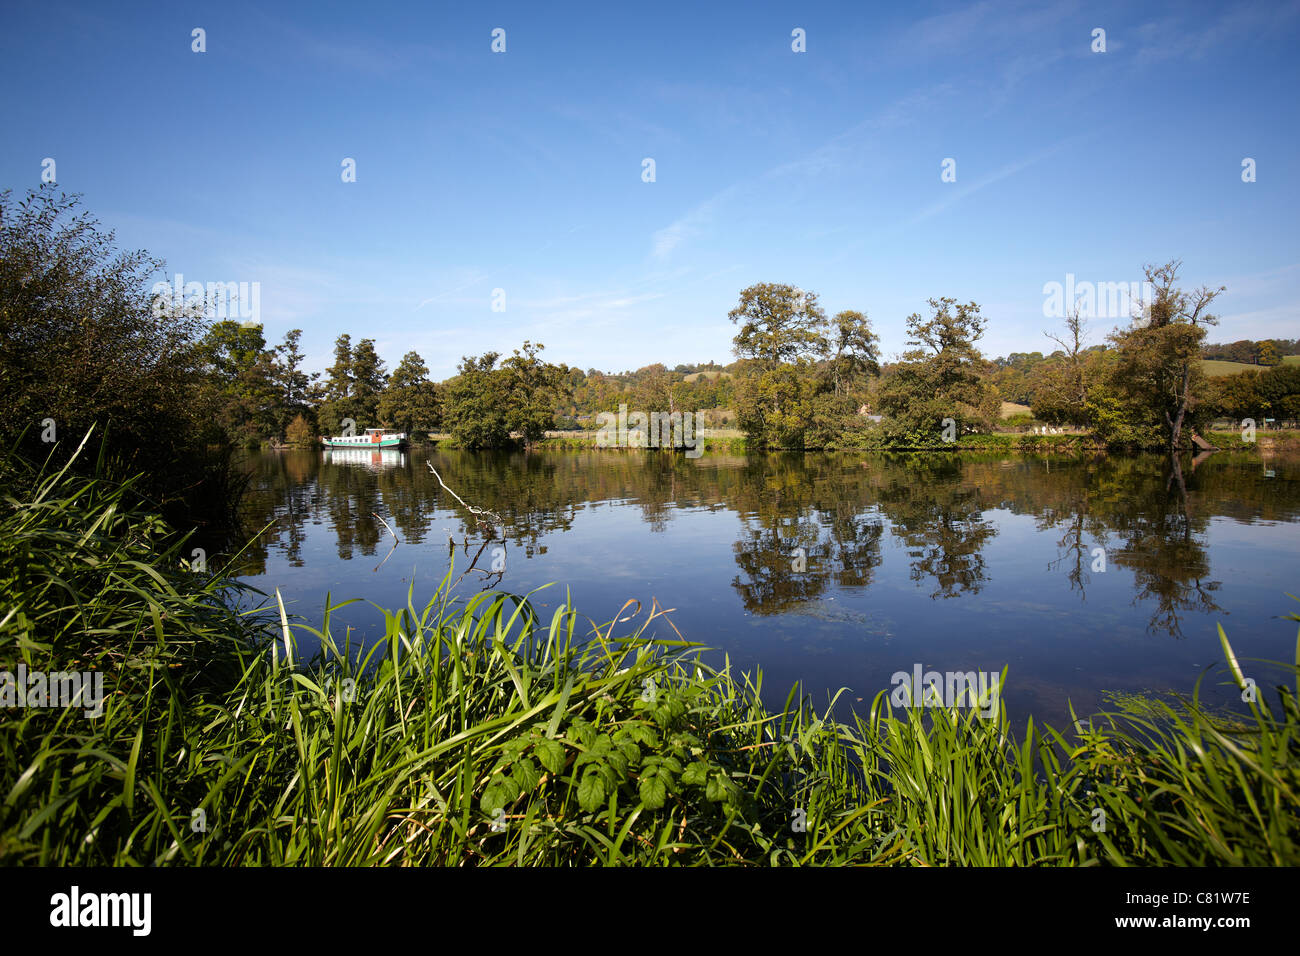 The barge Morgenster moored alongside the River Thames near to Pangbourne, Reading, Berkshire. - Stock Image